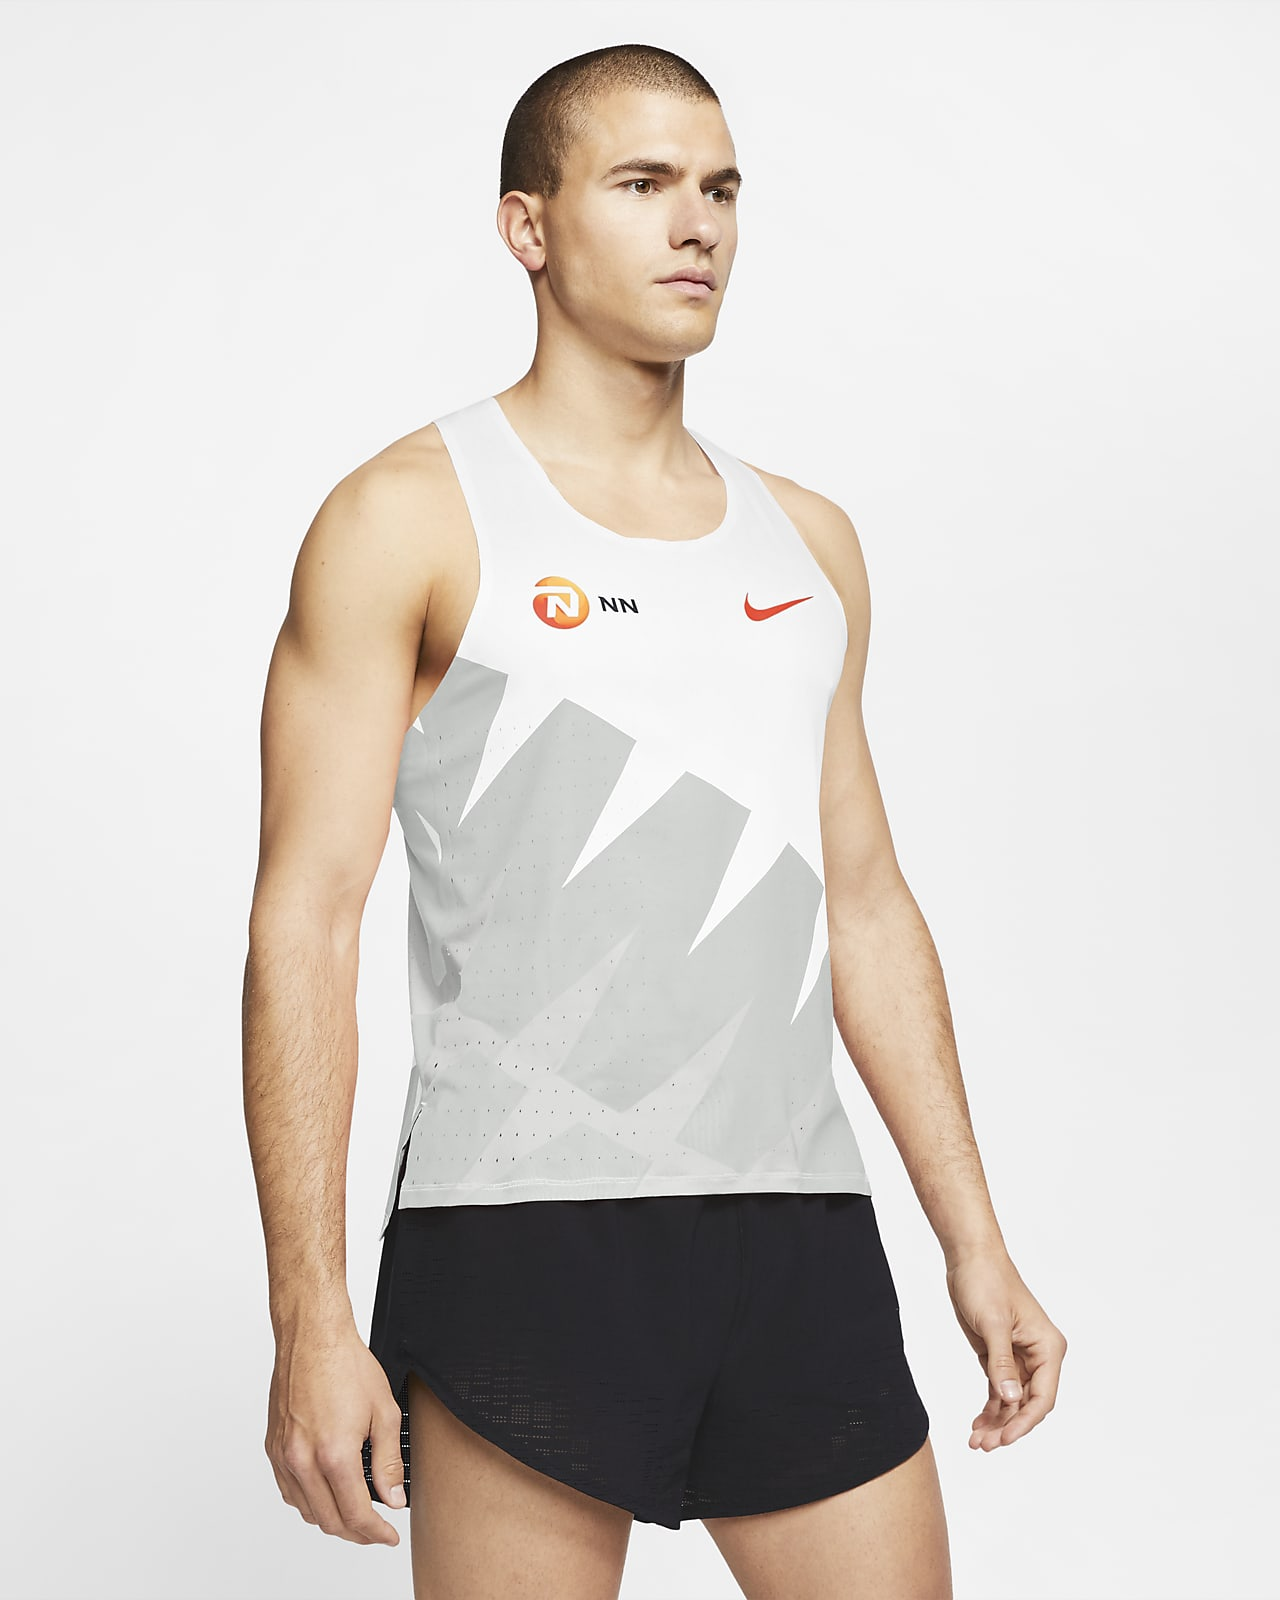 Universidad defecto tiburón  Nike AeroSwift NN Men's Running Singlet. Nike.com